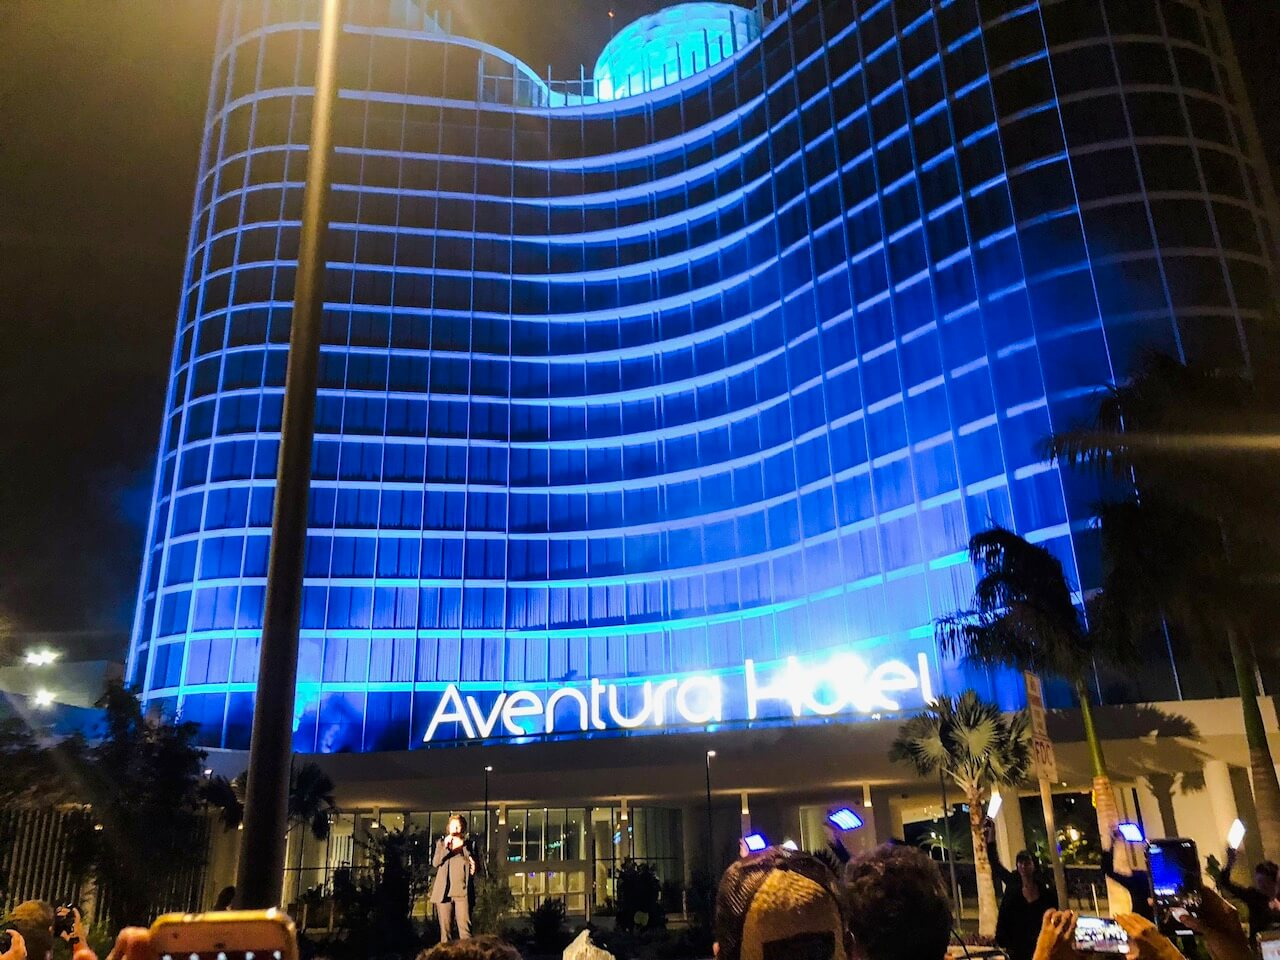 exterior of Aventura hotel at Universal Orlando Resort